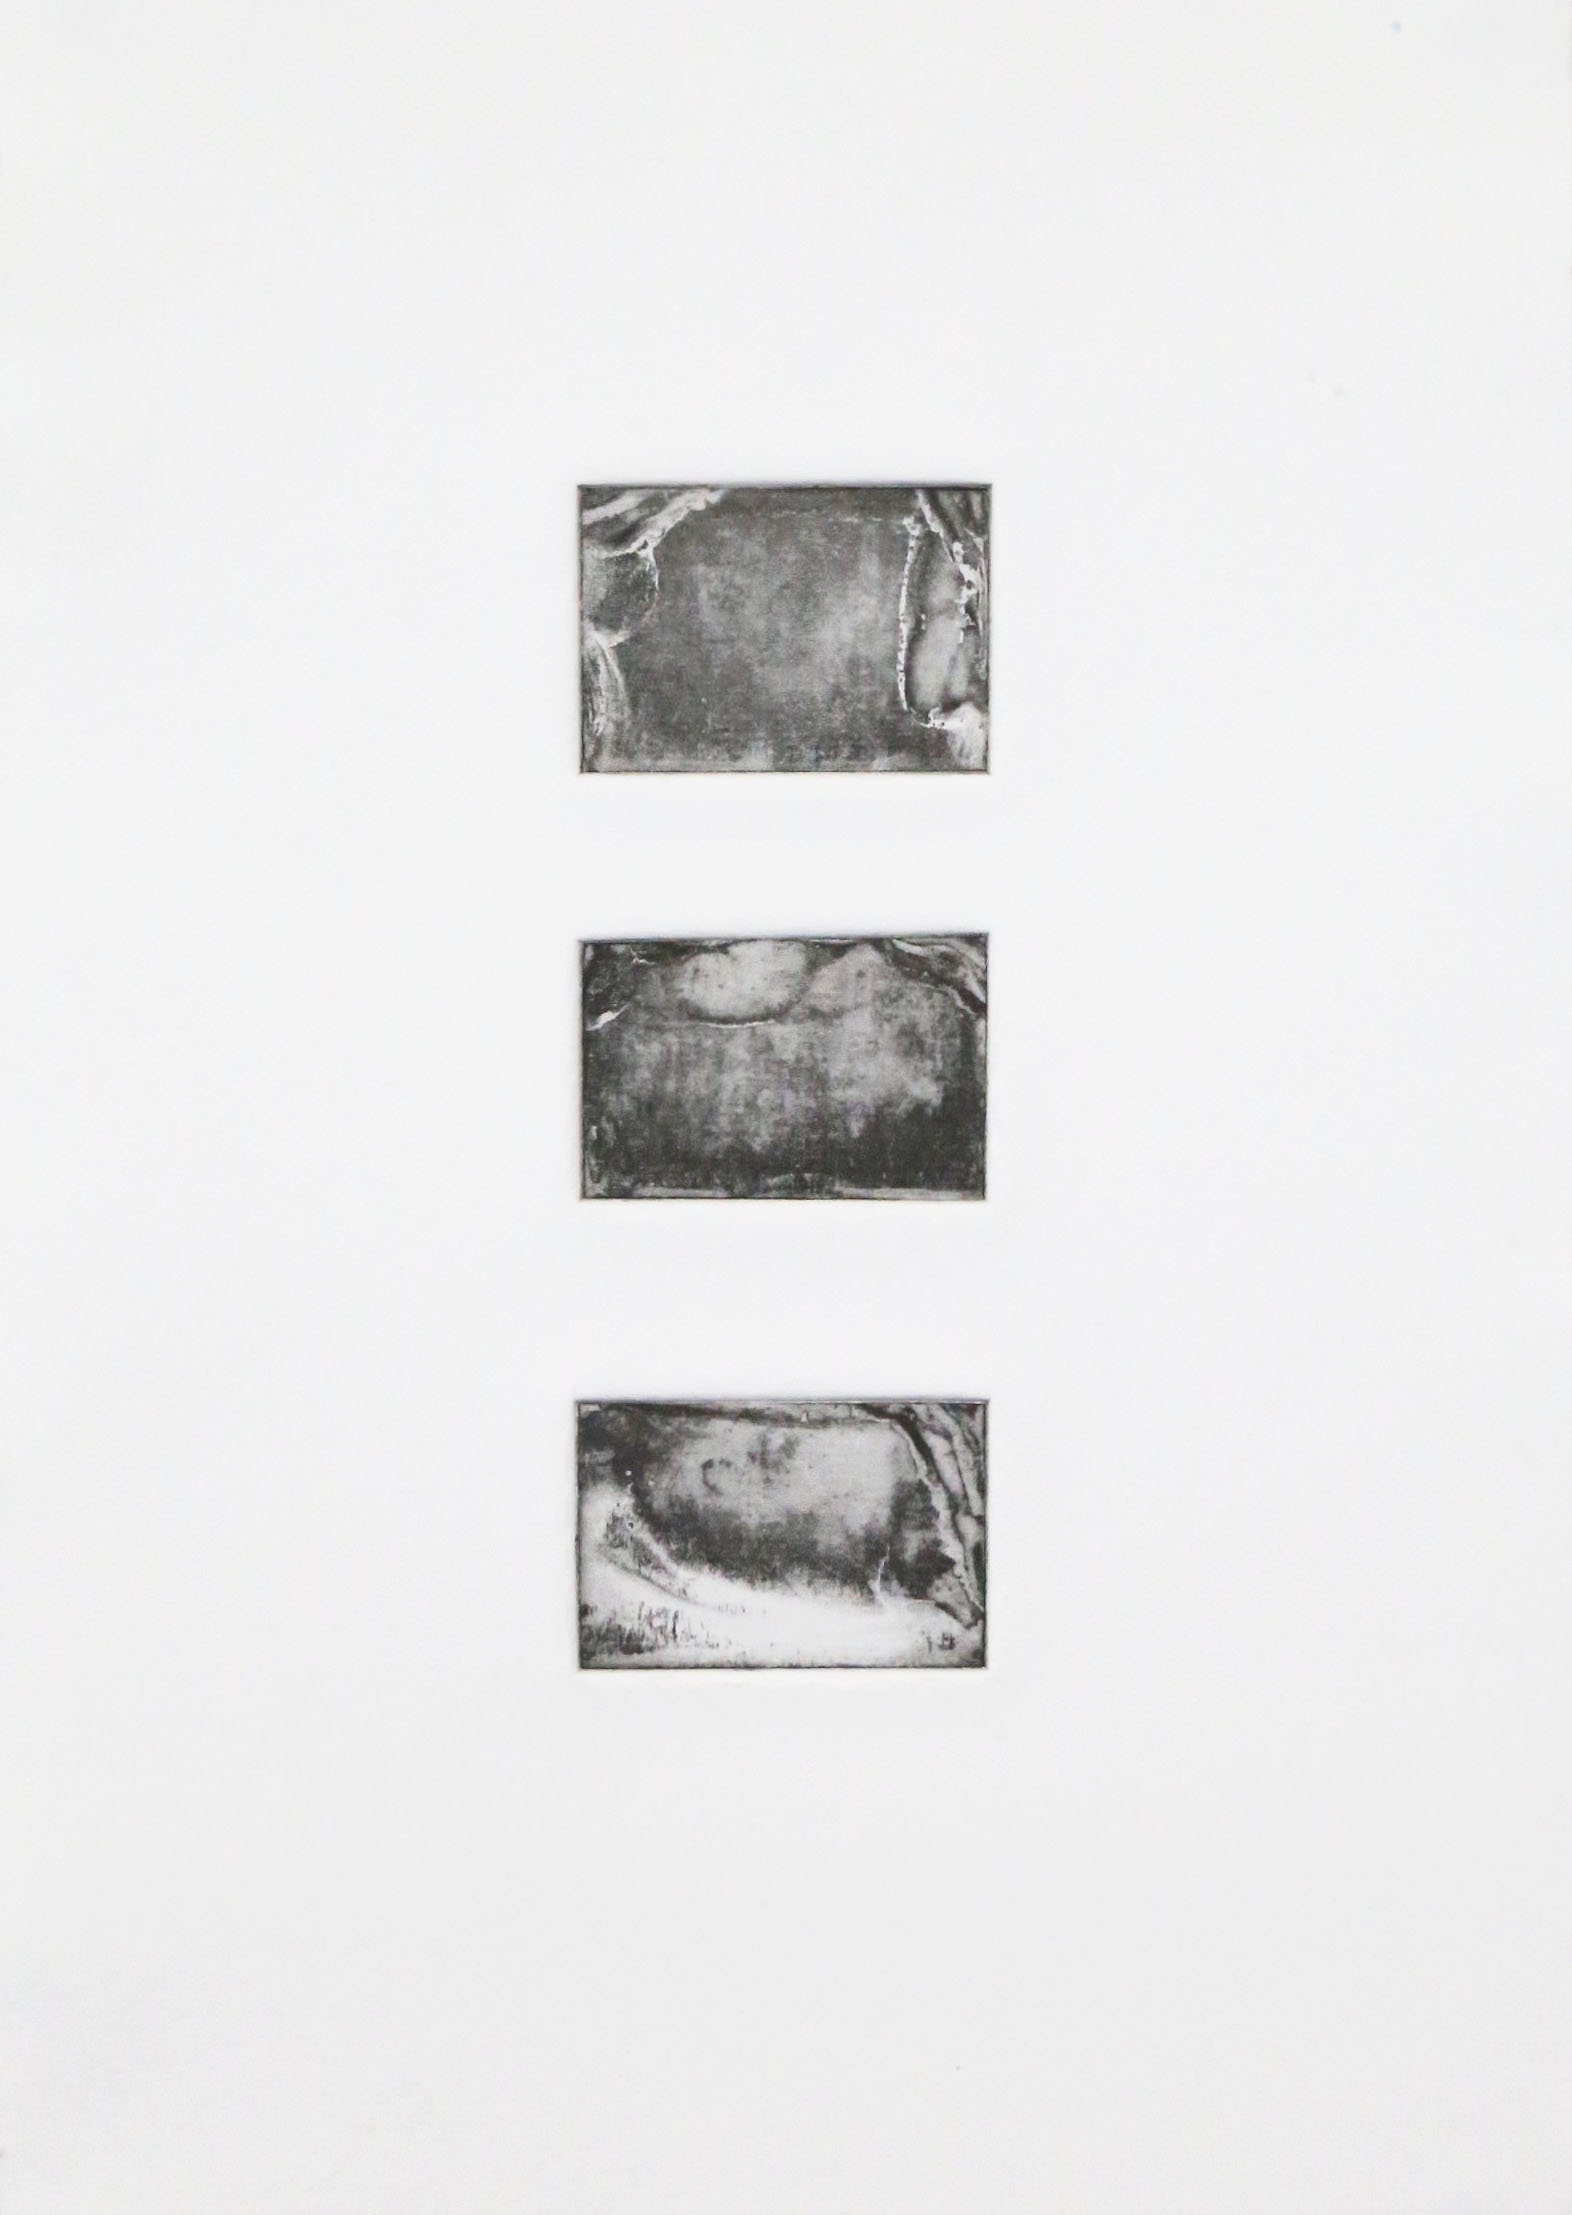 (1) The Looming Presence of Midst Flowing, Up a Cliffs Edge [size A4 paper, 5cm by 2.5cm zinc plates].jpg